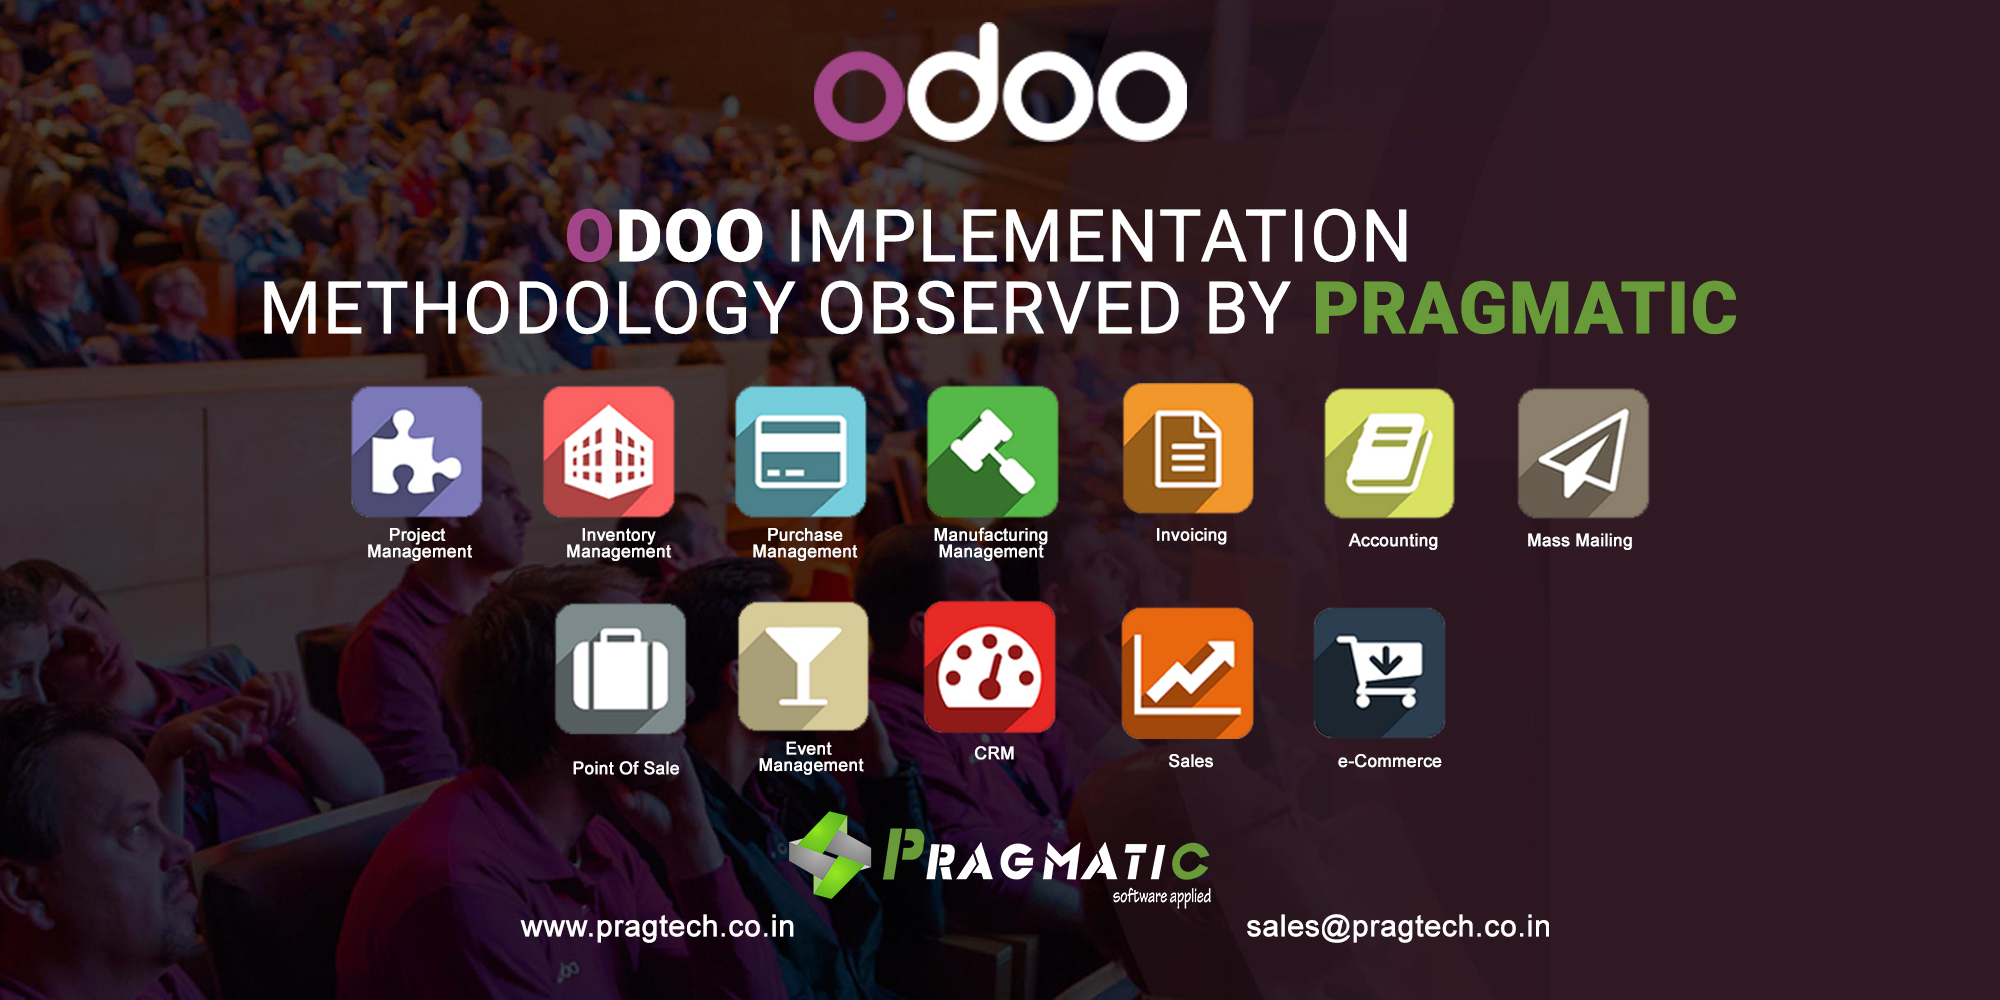 Odoo Implementation Methodology observed by Pragmatic